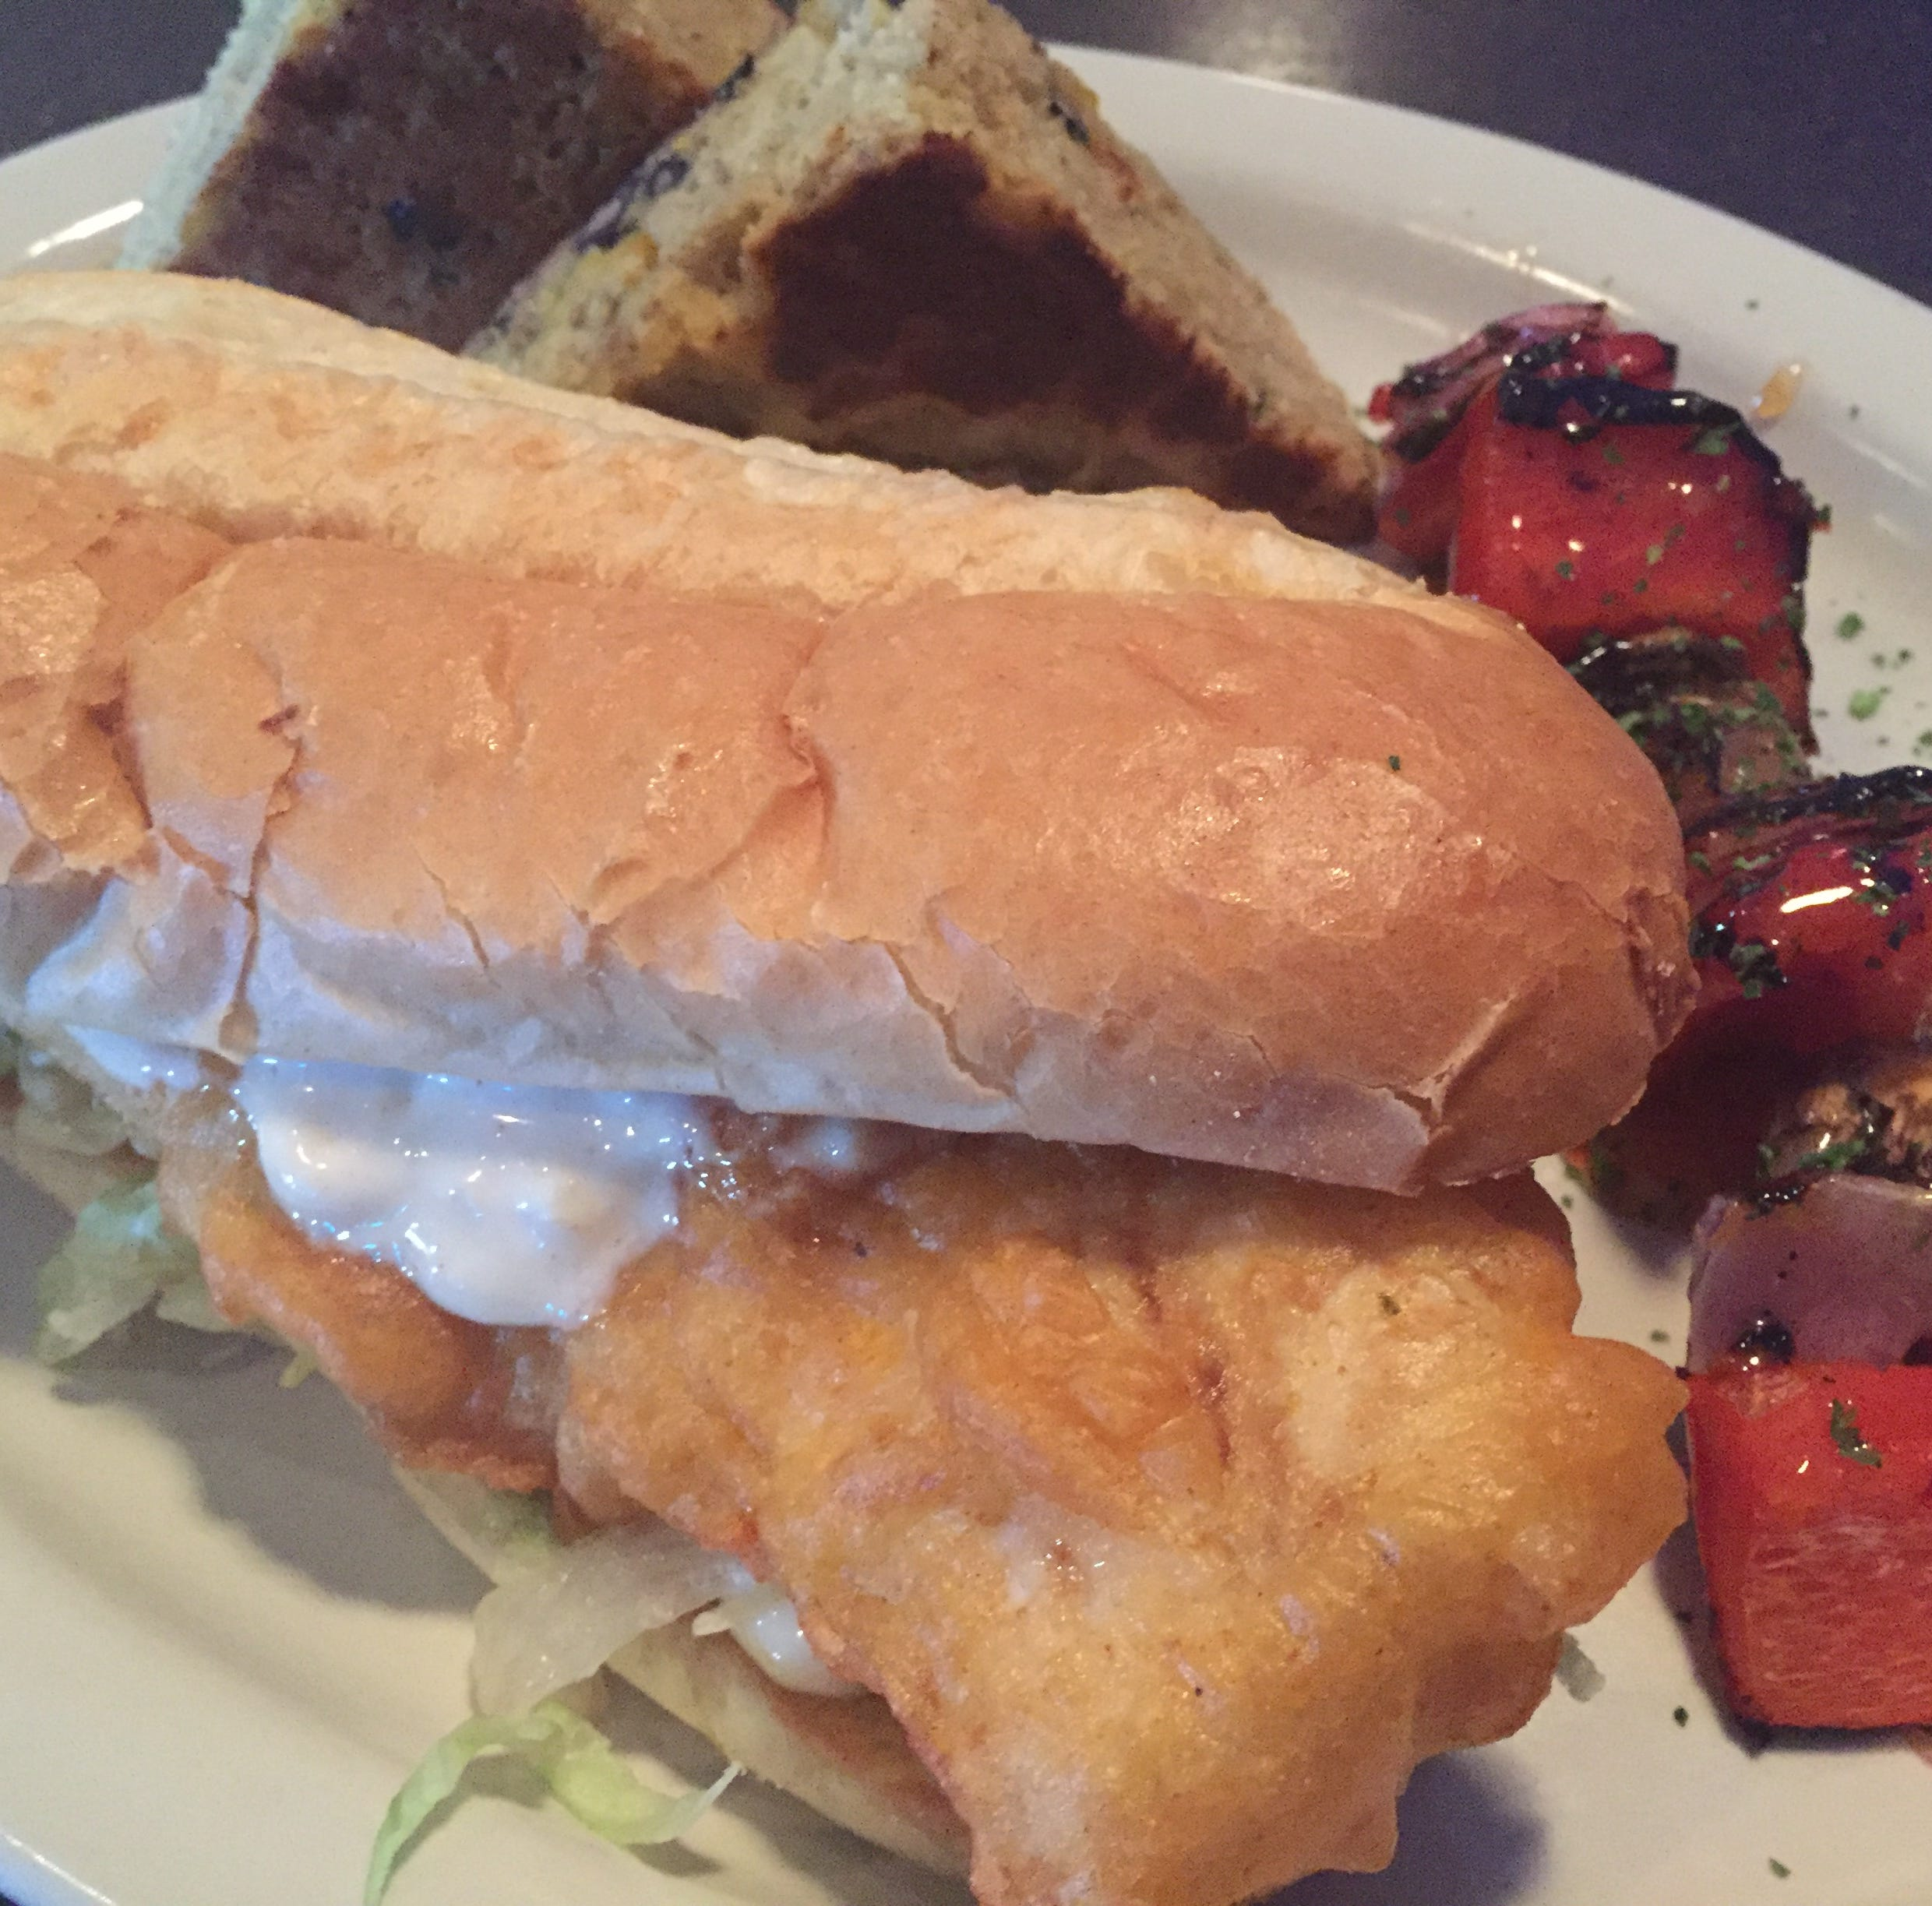 Fish sandwich of the week: Cod at Copper Blue